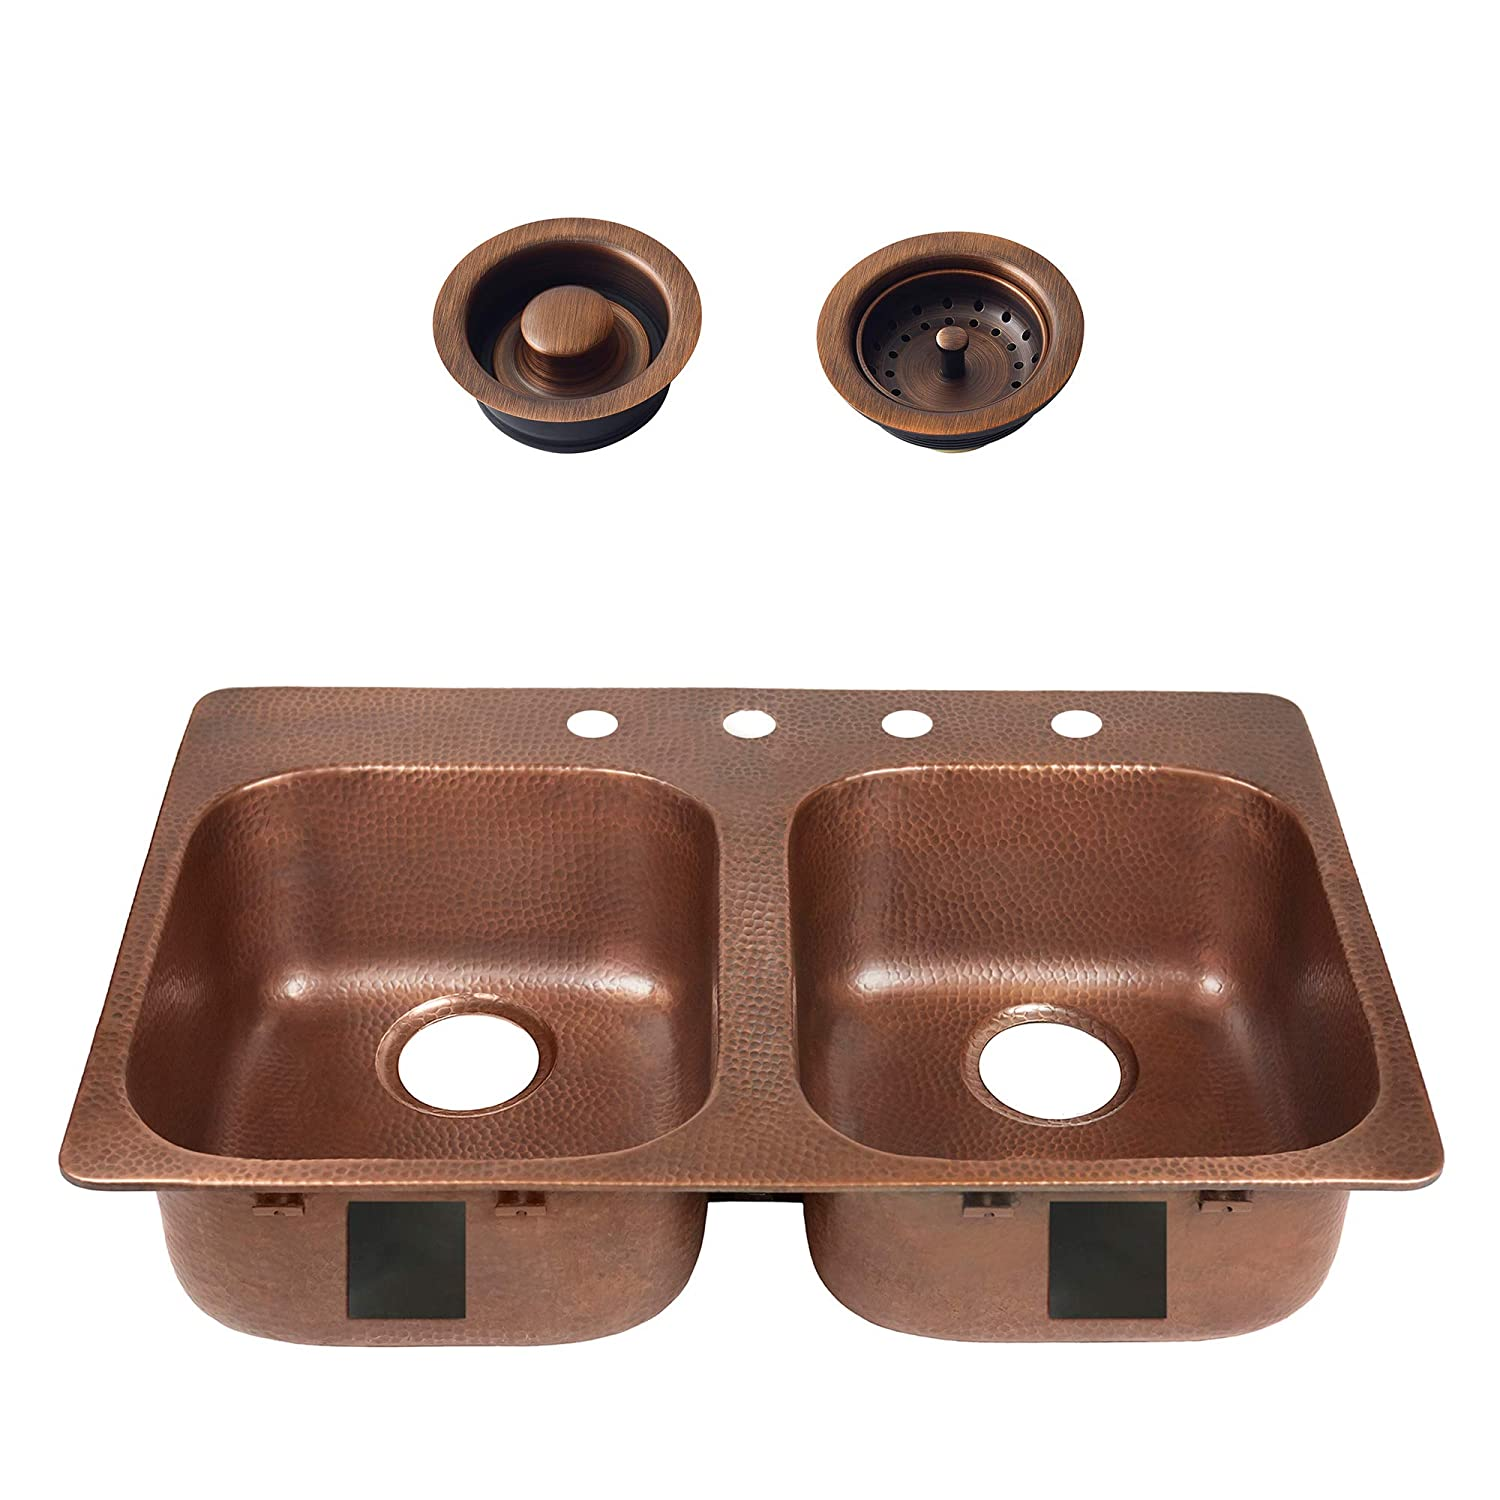 Sinkology SK104-33AC-4R-AMZ-BD Santi Handmade Pure Solid 33 in. 4-Hole Right Side Antique Strainer Drain and Disposal Flange Double Bowl, Drop-in, Copper Kitchen Sink Kit